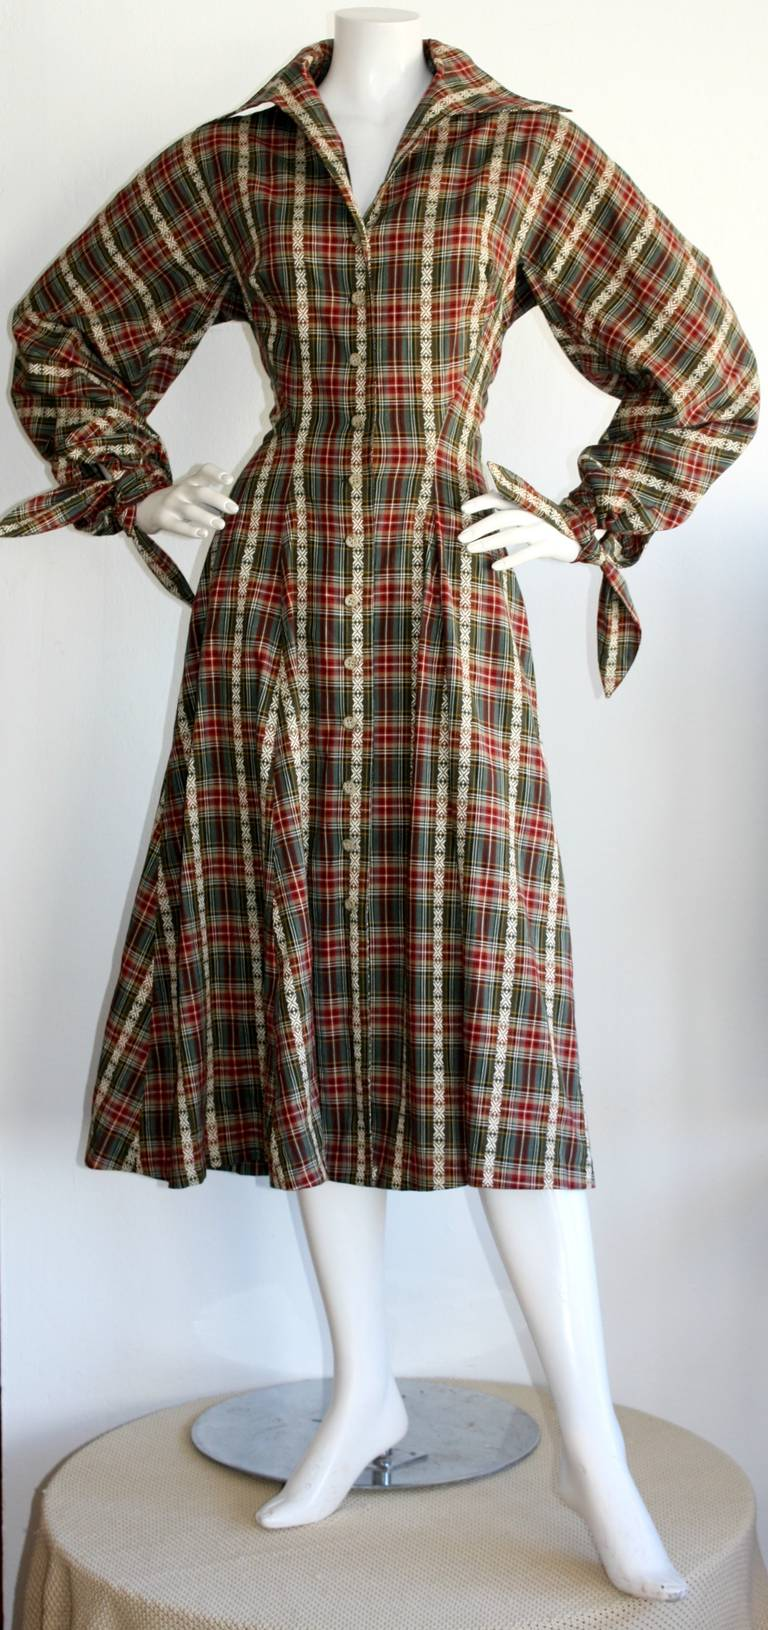 Amazing vintage Byron Lars tartan plaid shirt dress. Chic ties at each cuff. In great condition.m